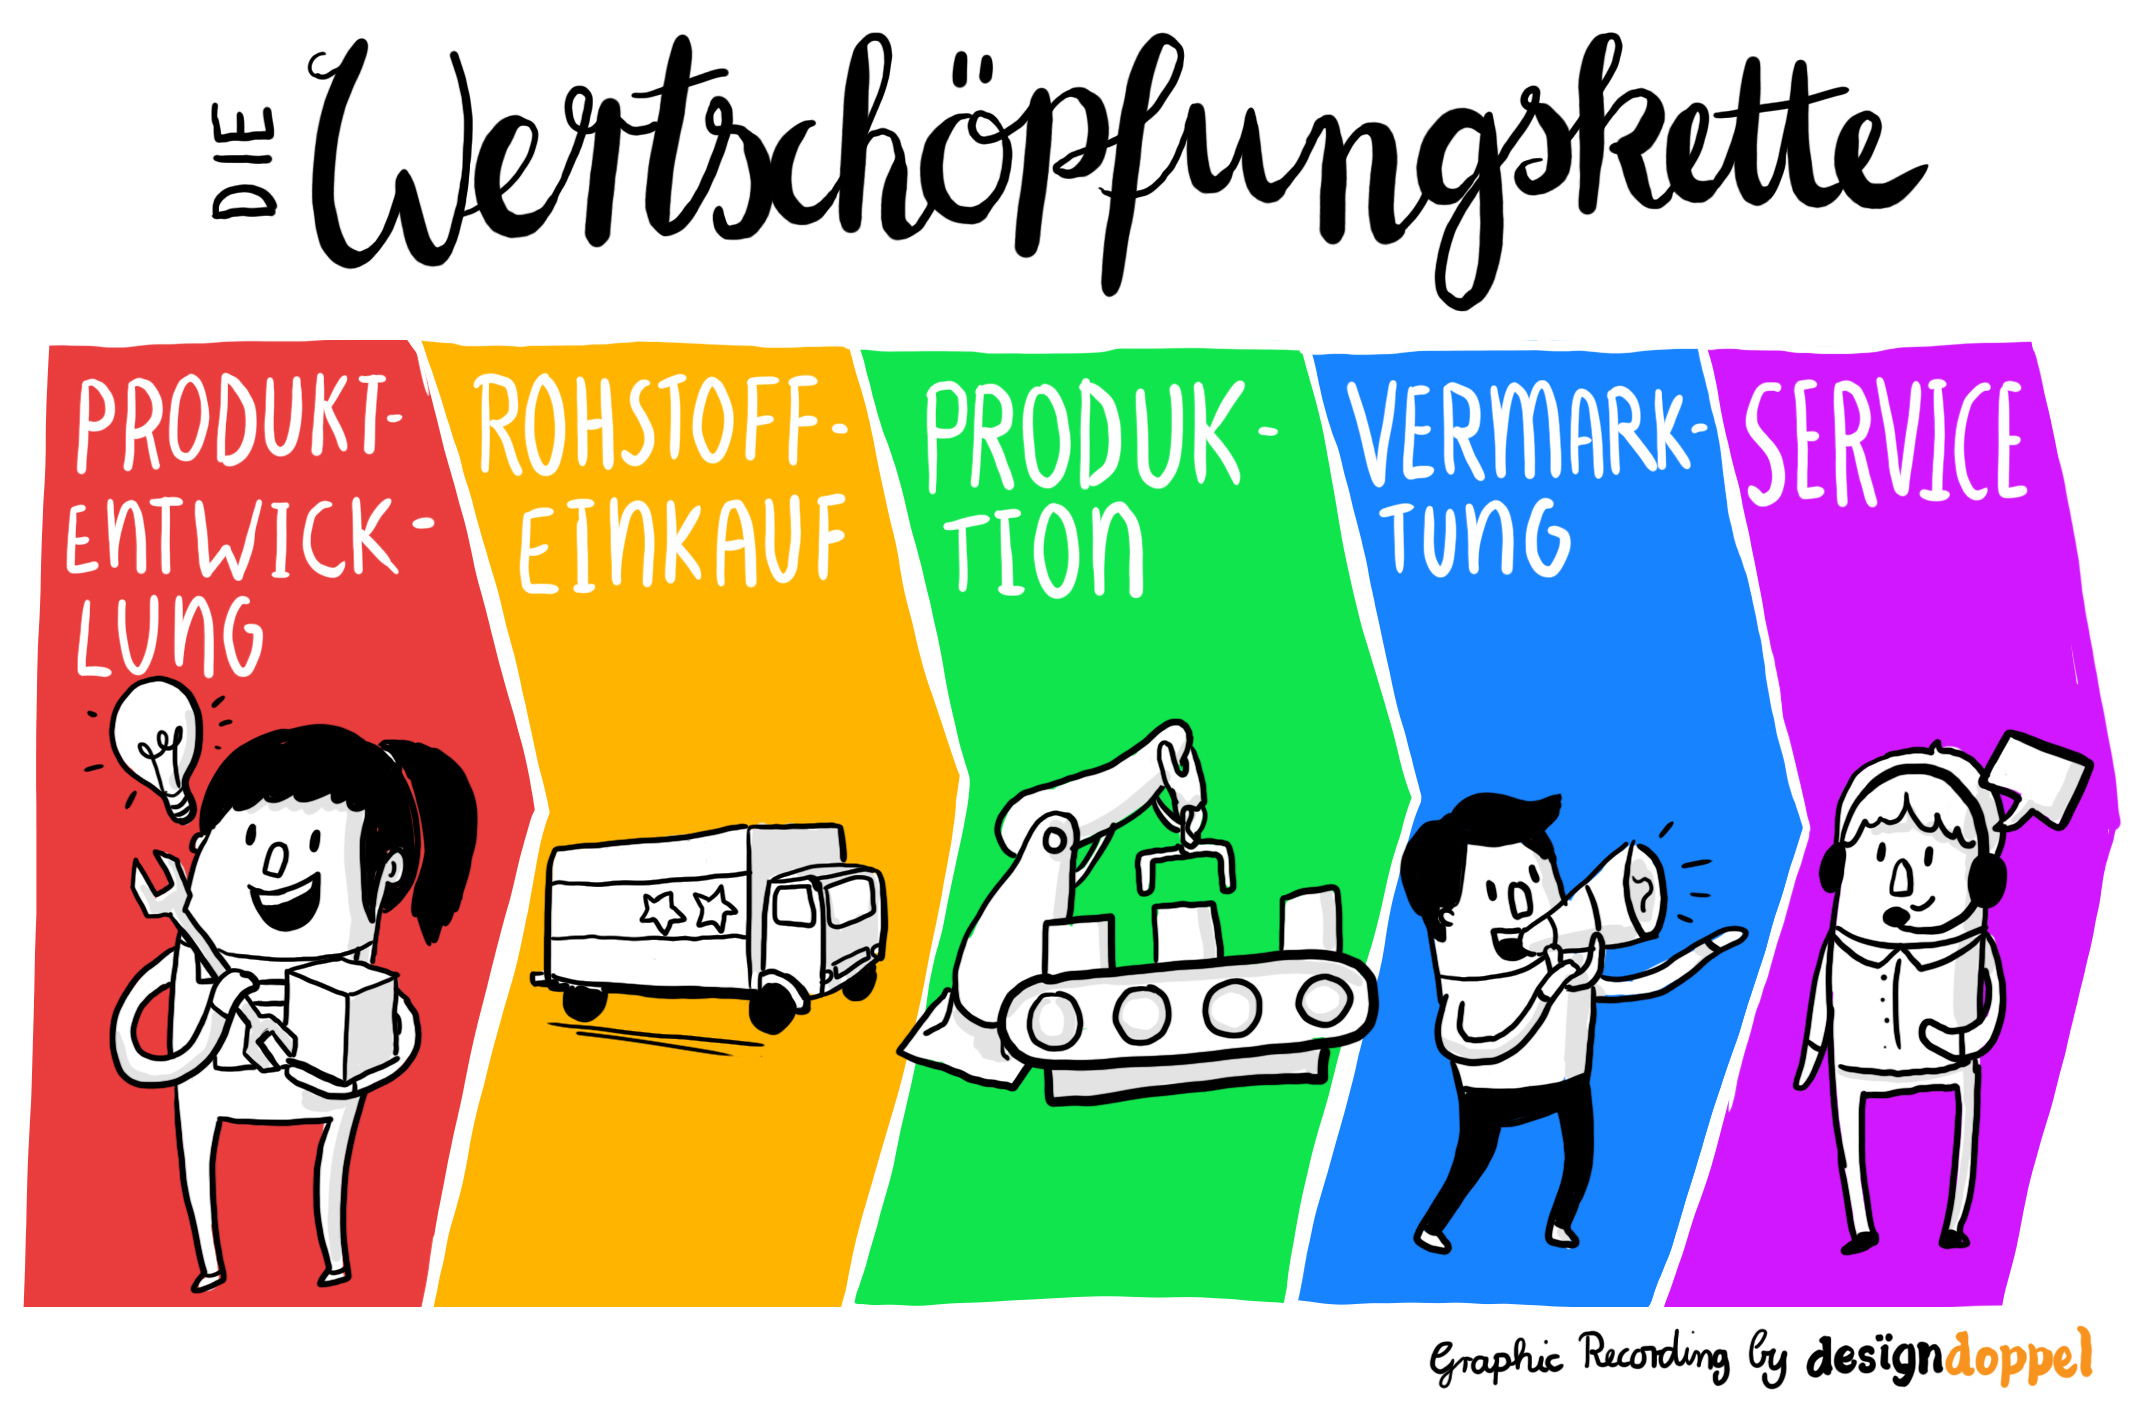 Graphic Recording digital Wertschöpfungskette Value Chain